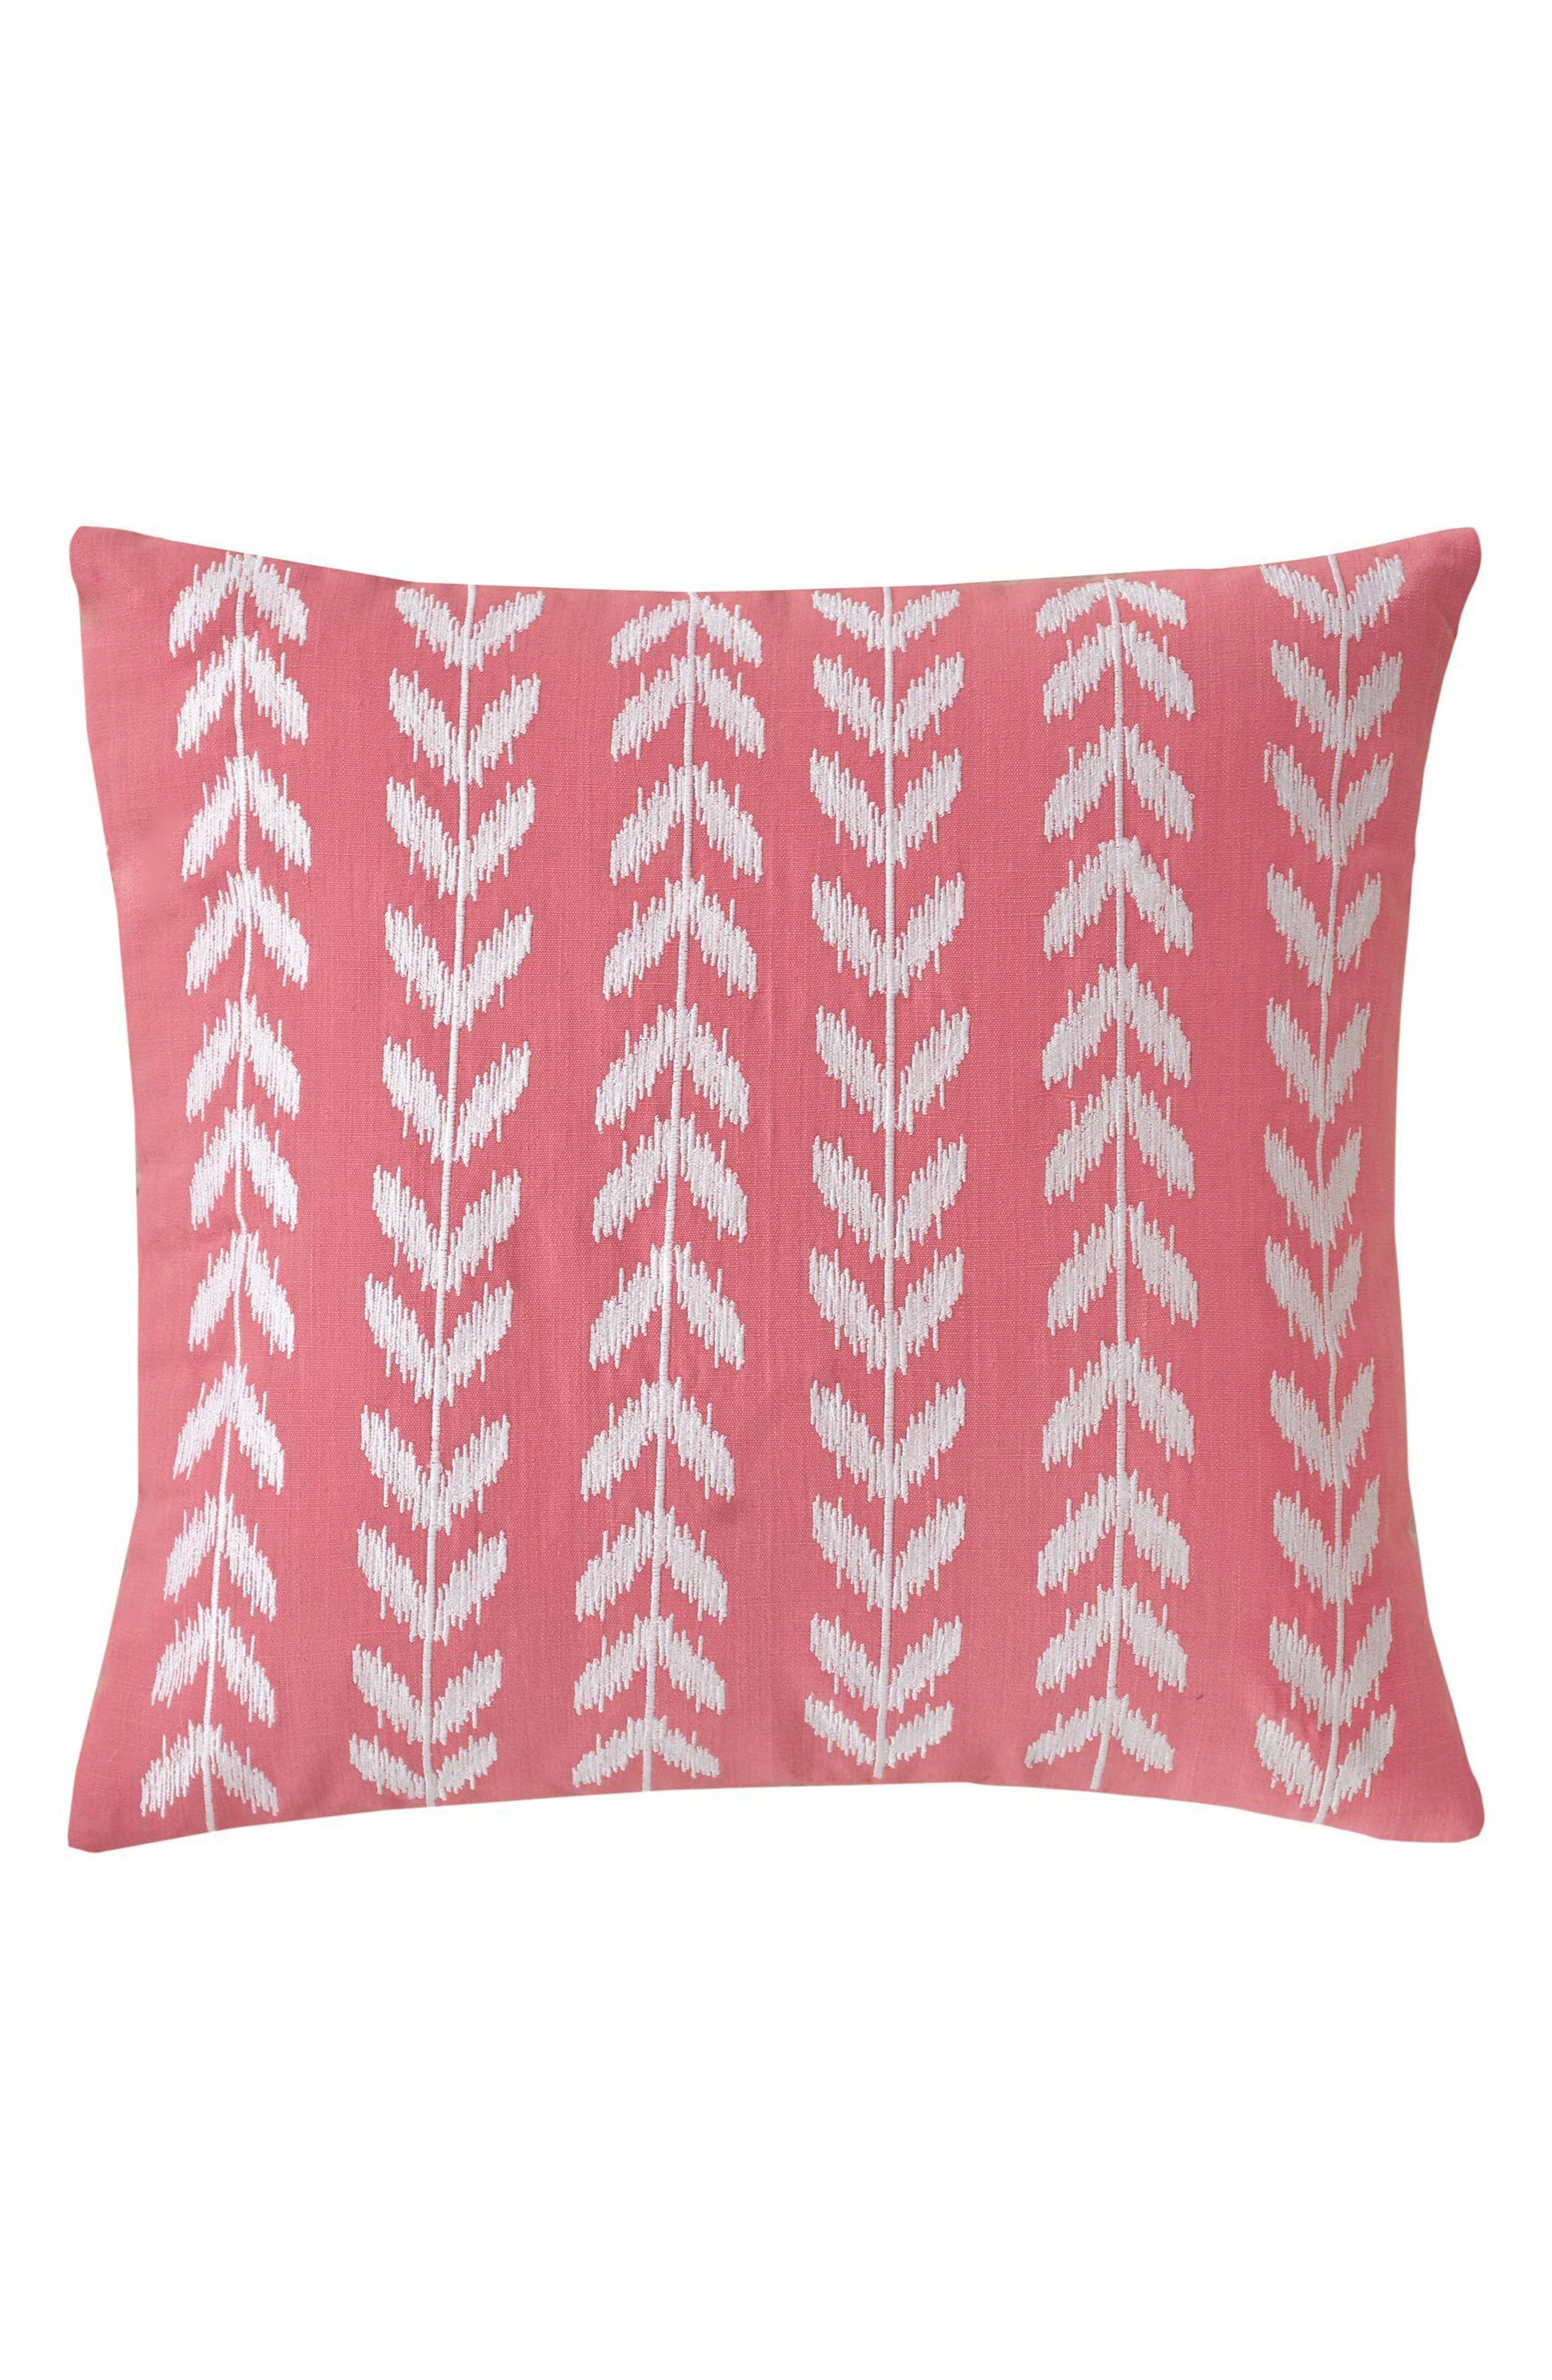 Southern Tide Coastal Ikat Heart Deco Accent Pillow